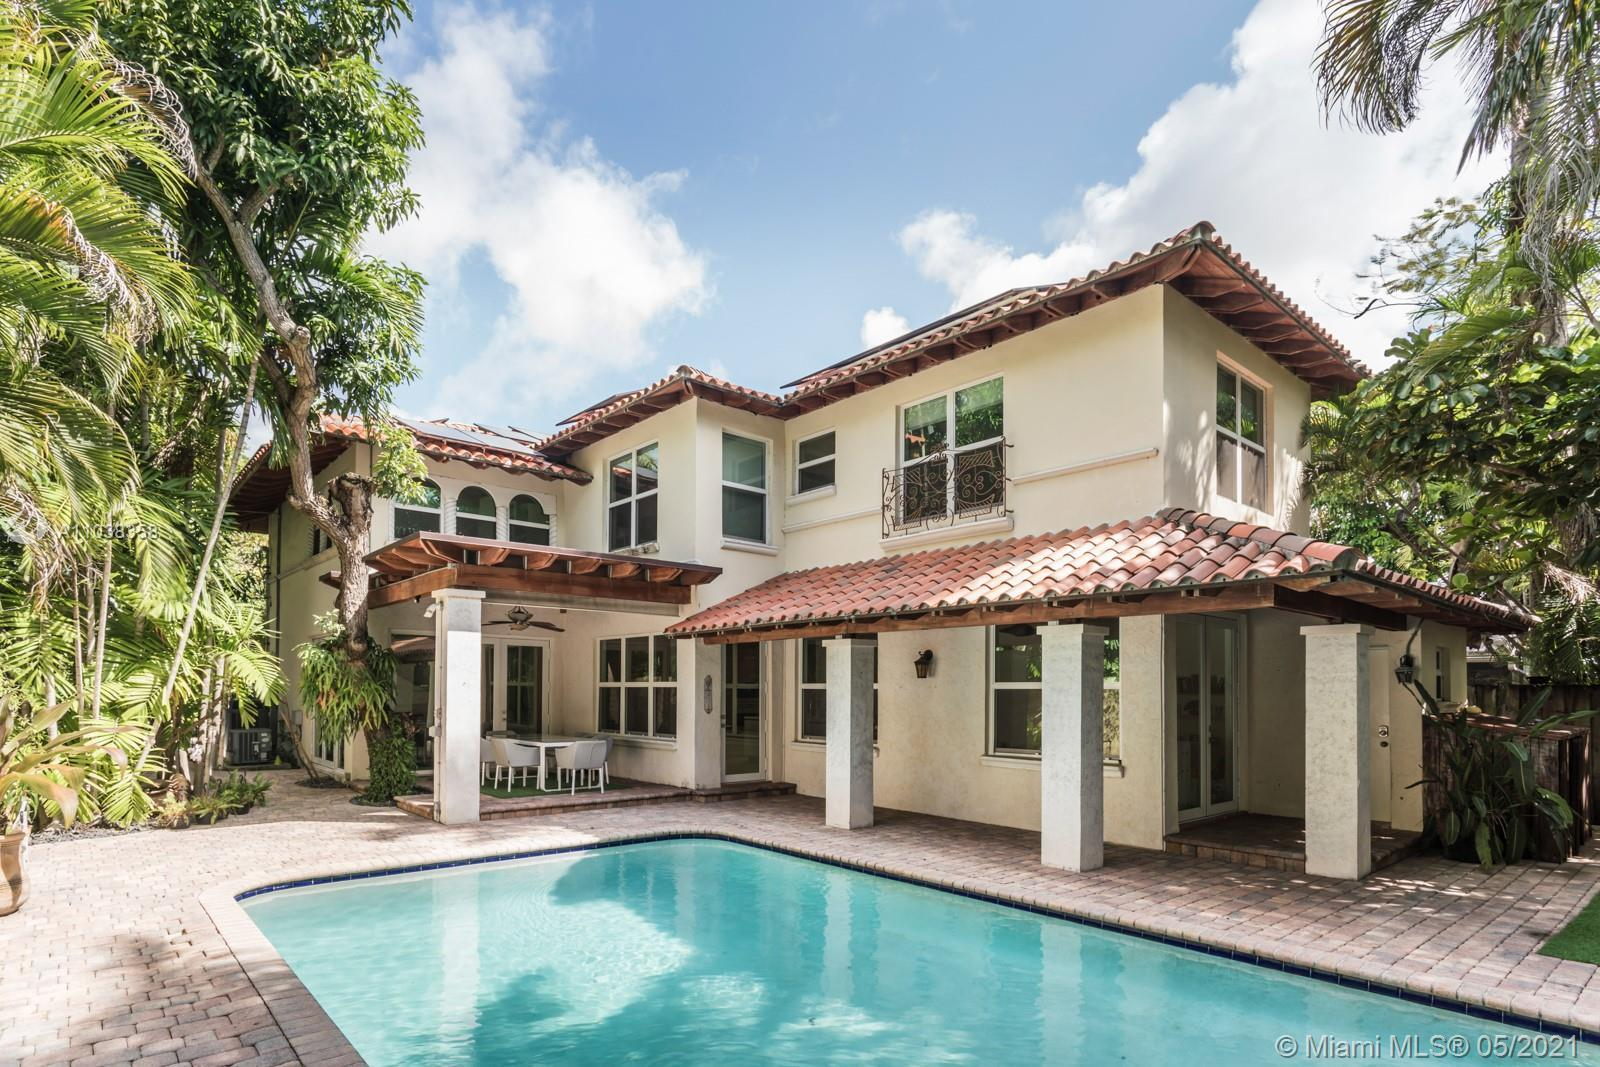 Stylish Mediterranean 4,014 Sq. Ft. Coconut Grove home with 4 bedrooms, 3.5 baths. Loft-style floor